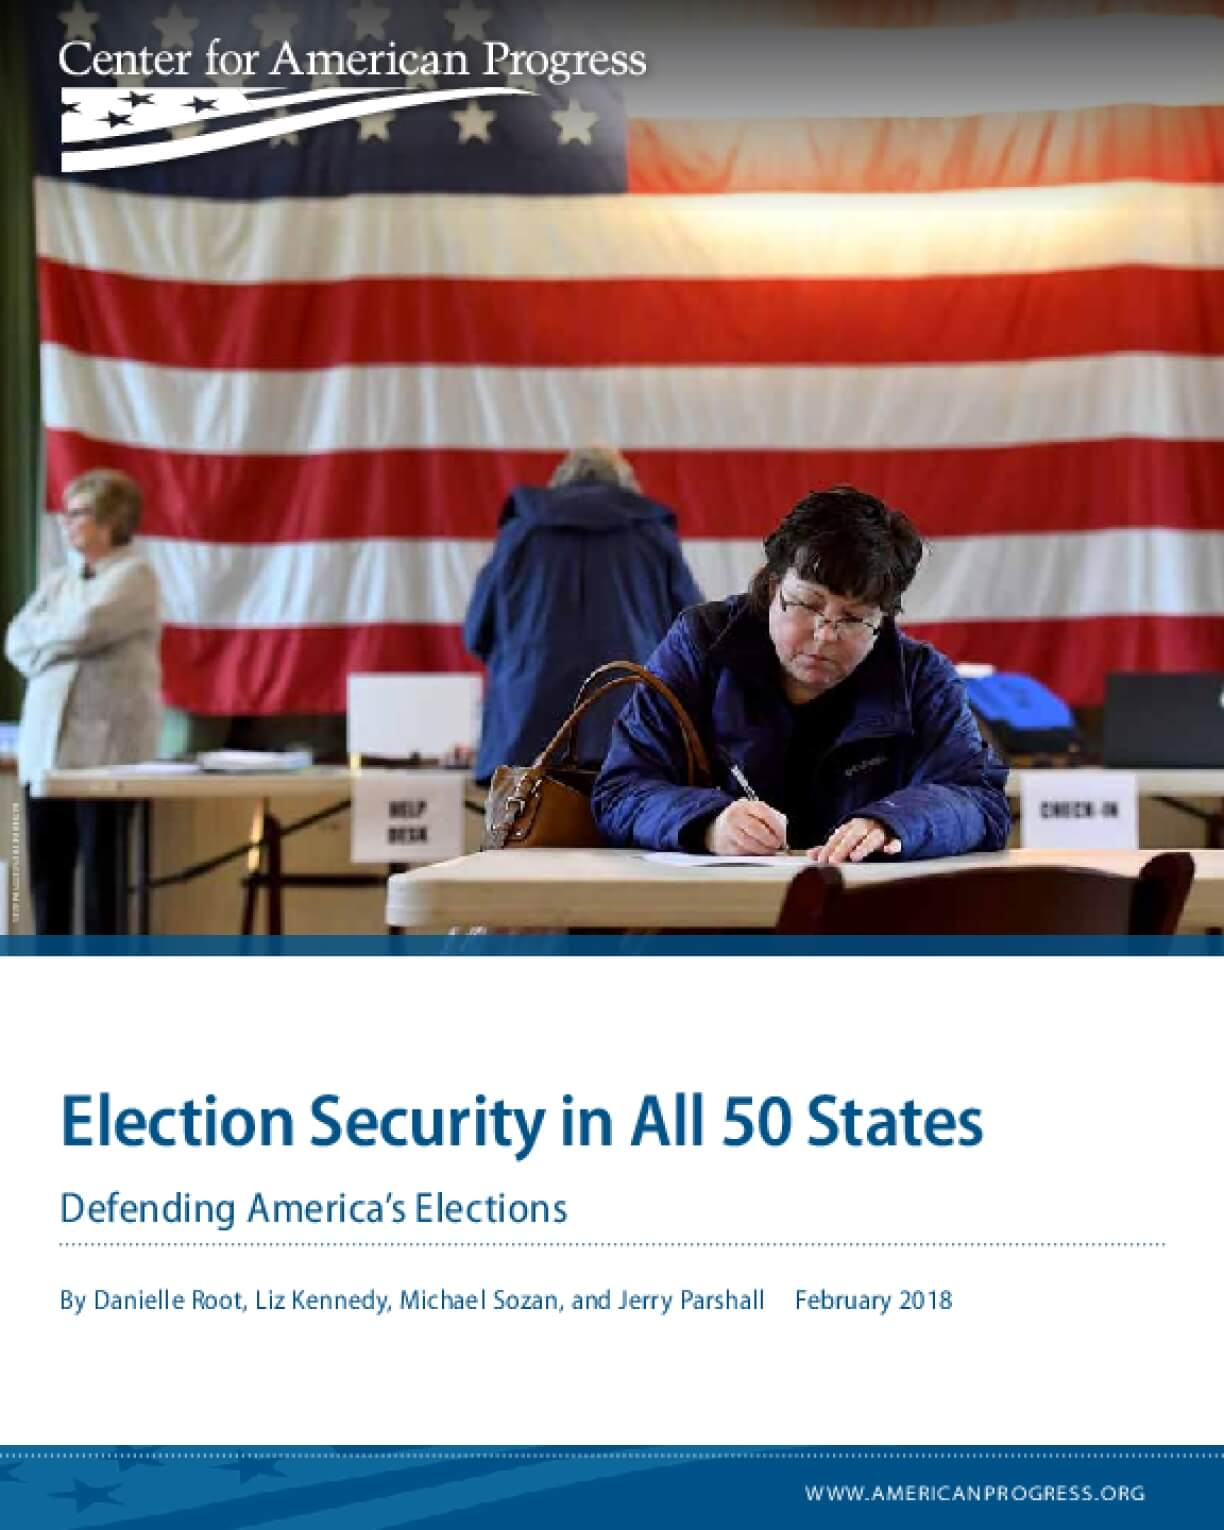 Election Security in All 50 States: Defending America's Elections